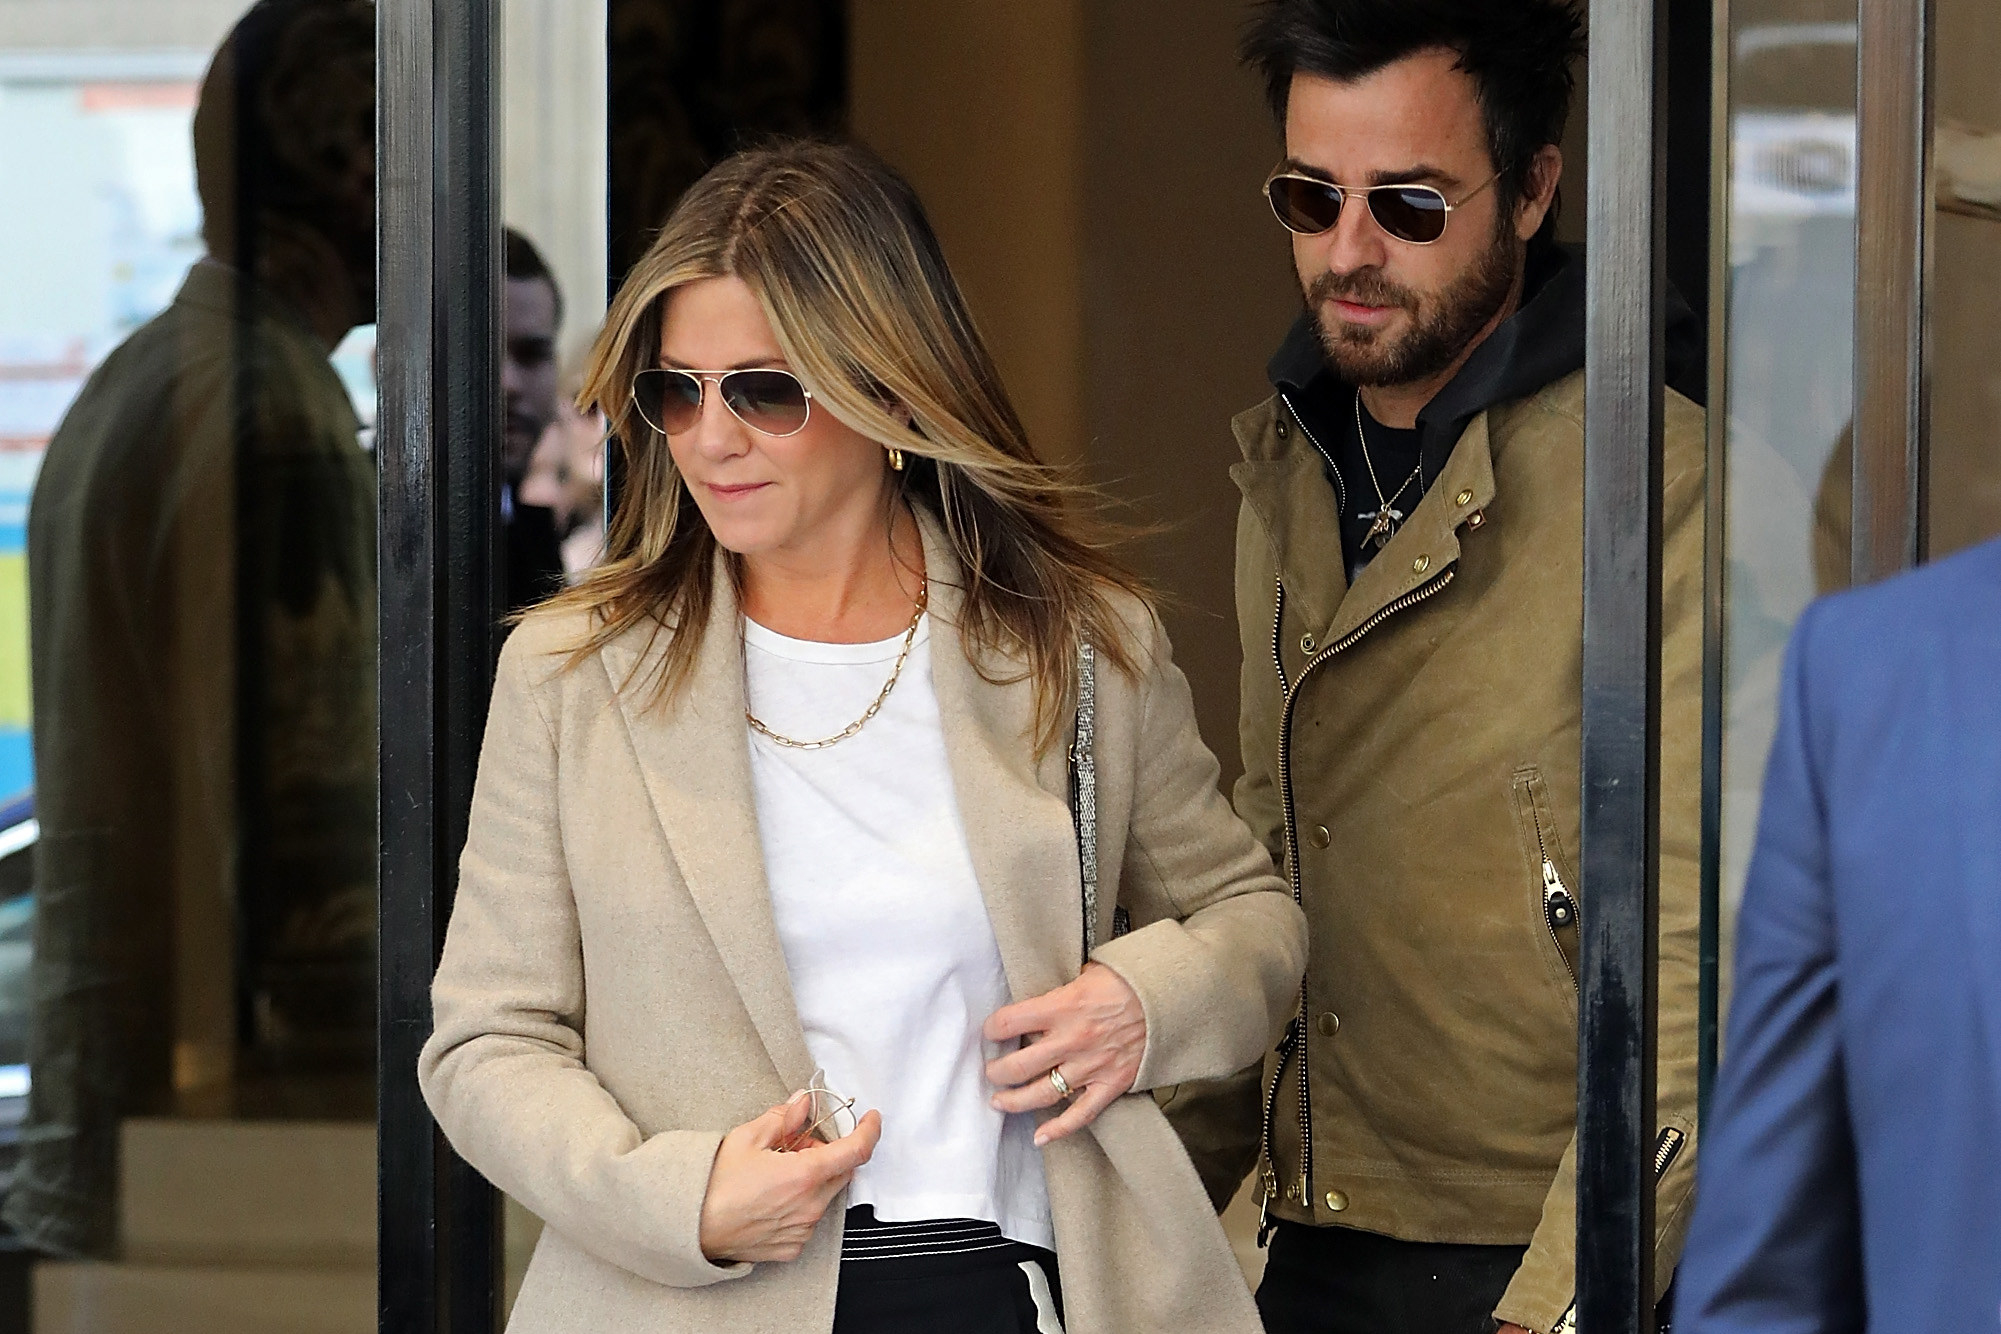 Aniston and Theroux leaving the Chanel store in Paris in April 2017